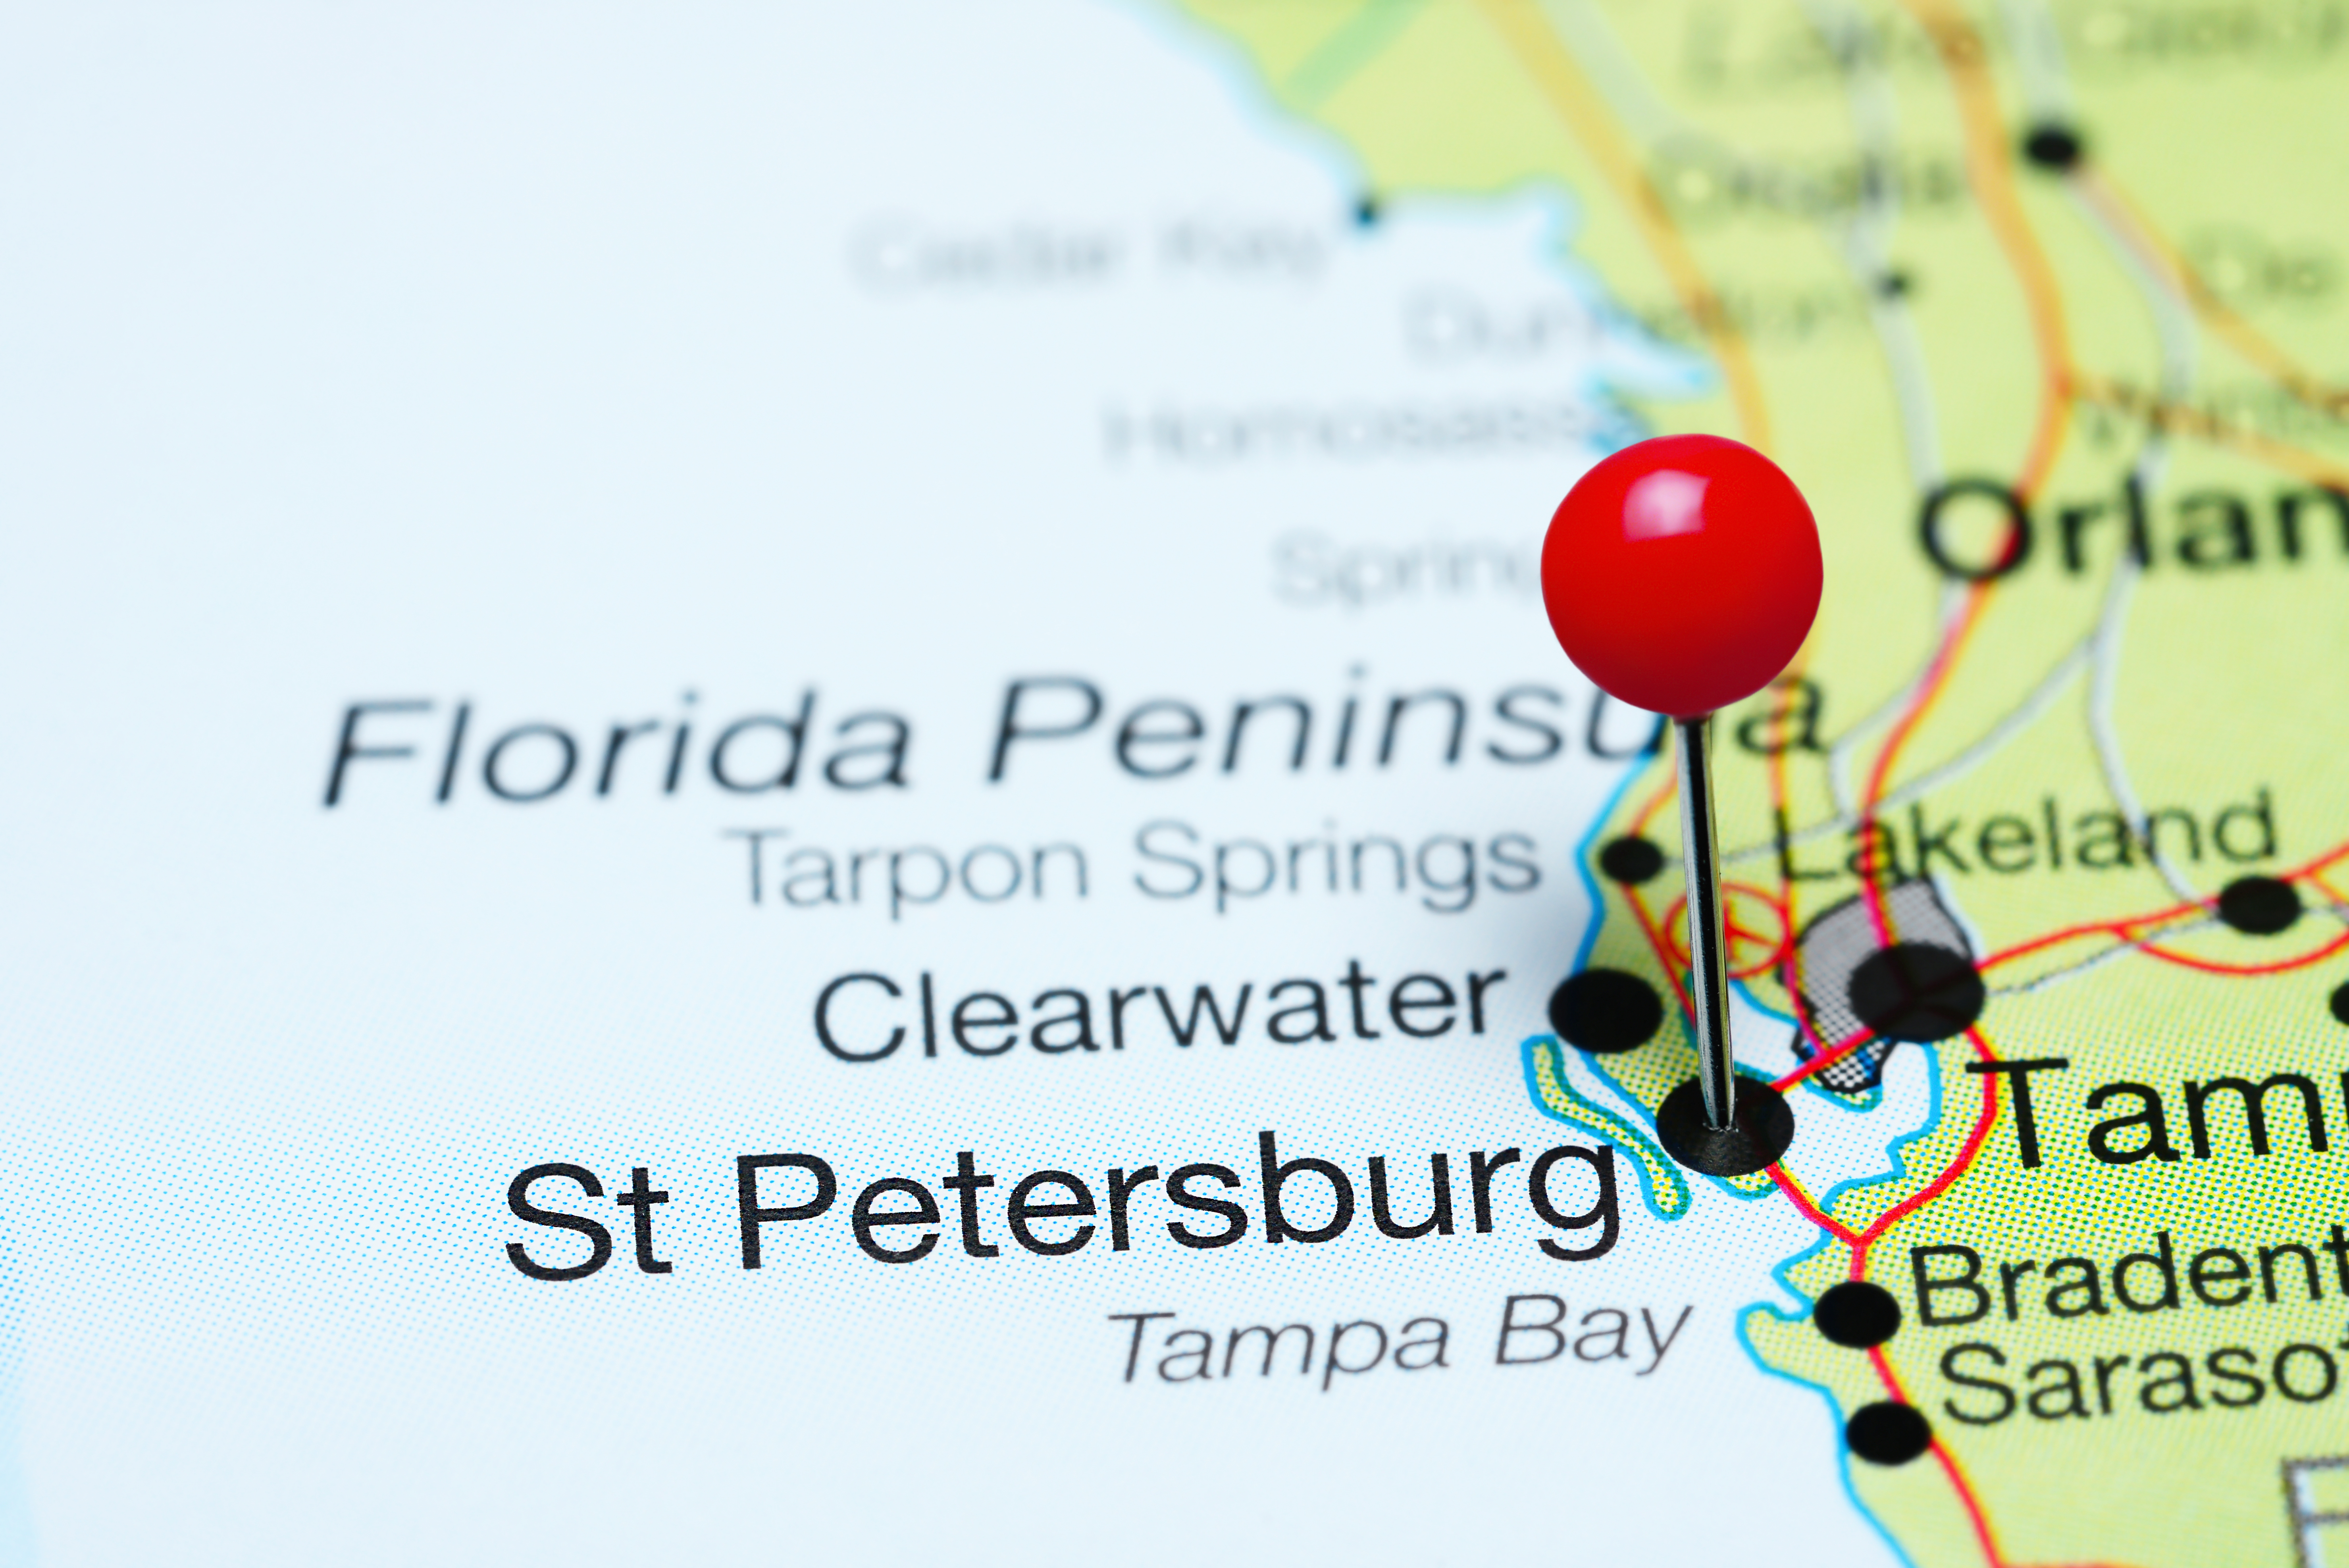 St. Petersburg is ground zero for juvenile auto thefts in Florida